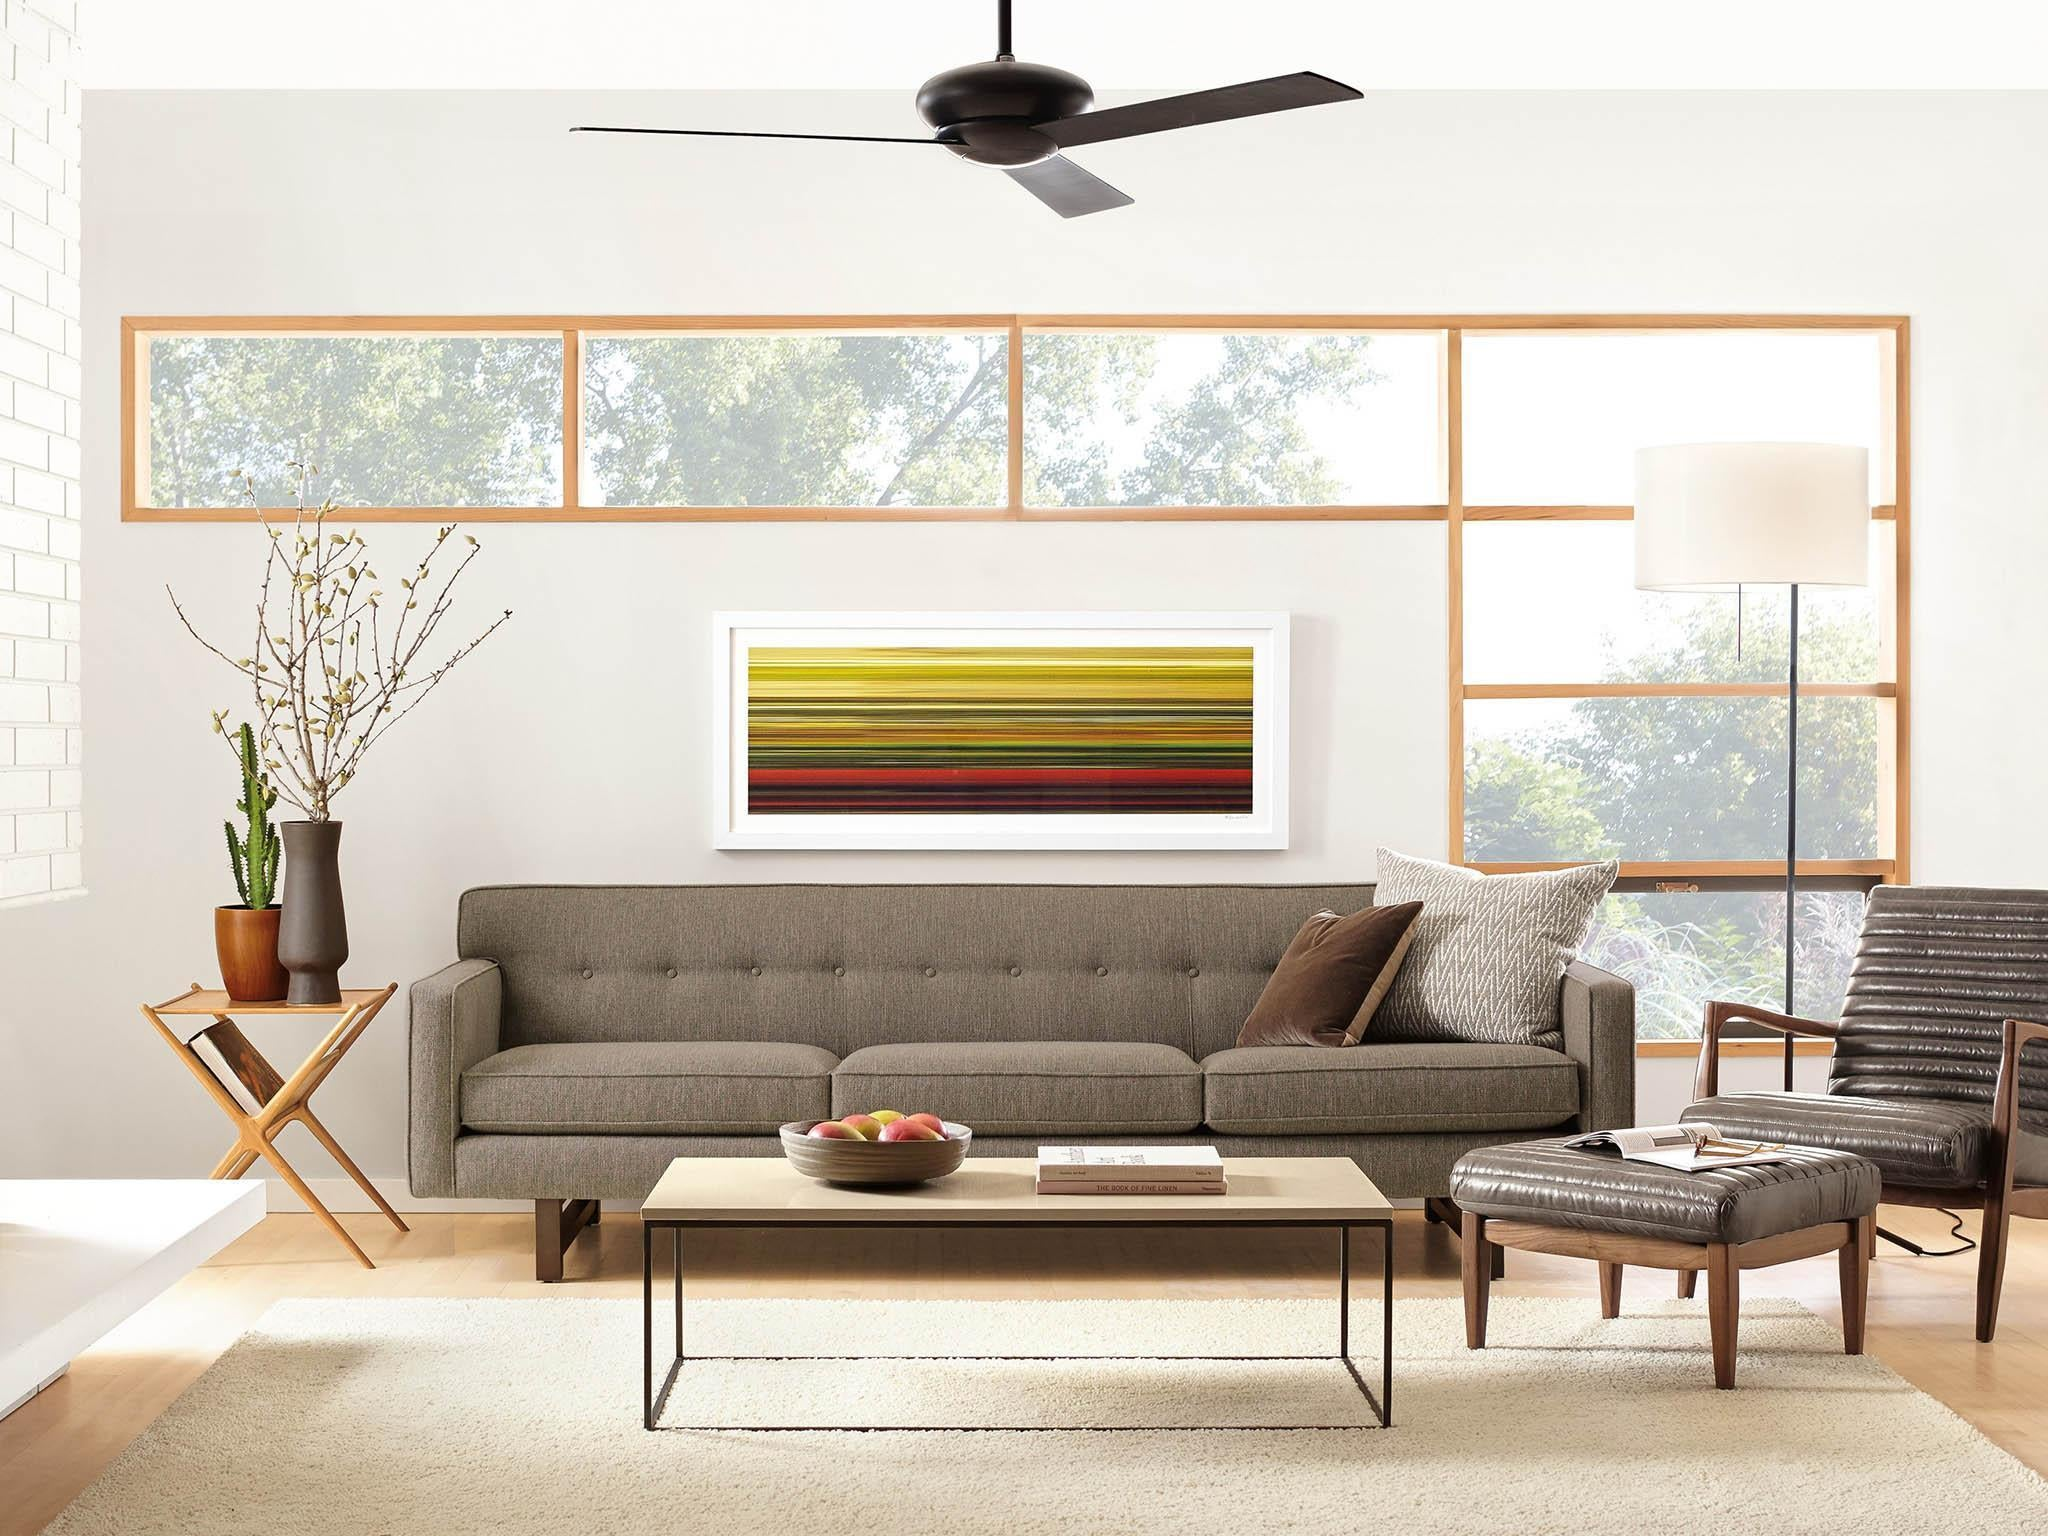 Design trends come and go but mid century modern is forever